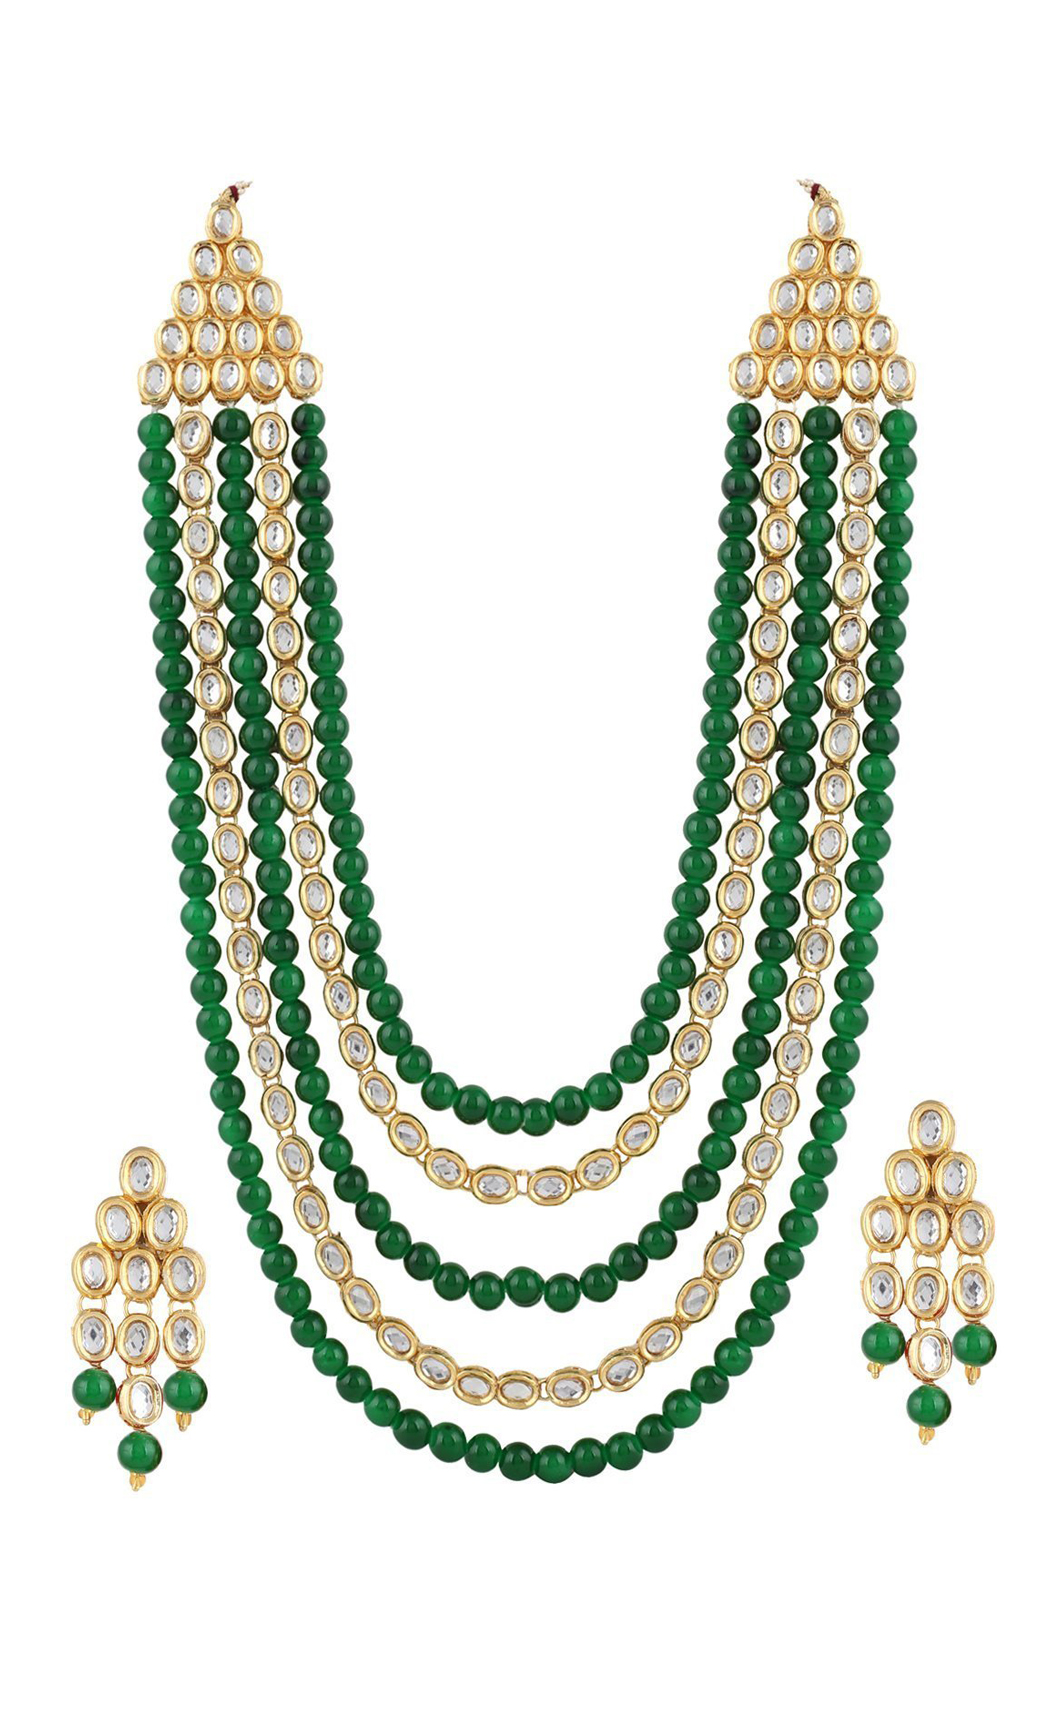 Four Line Emerald and Kunadn Necklace and Earring Set - Shop Online